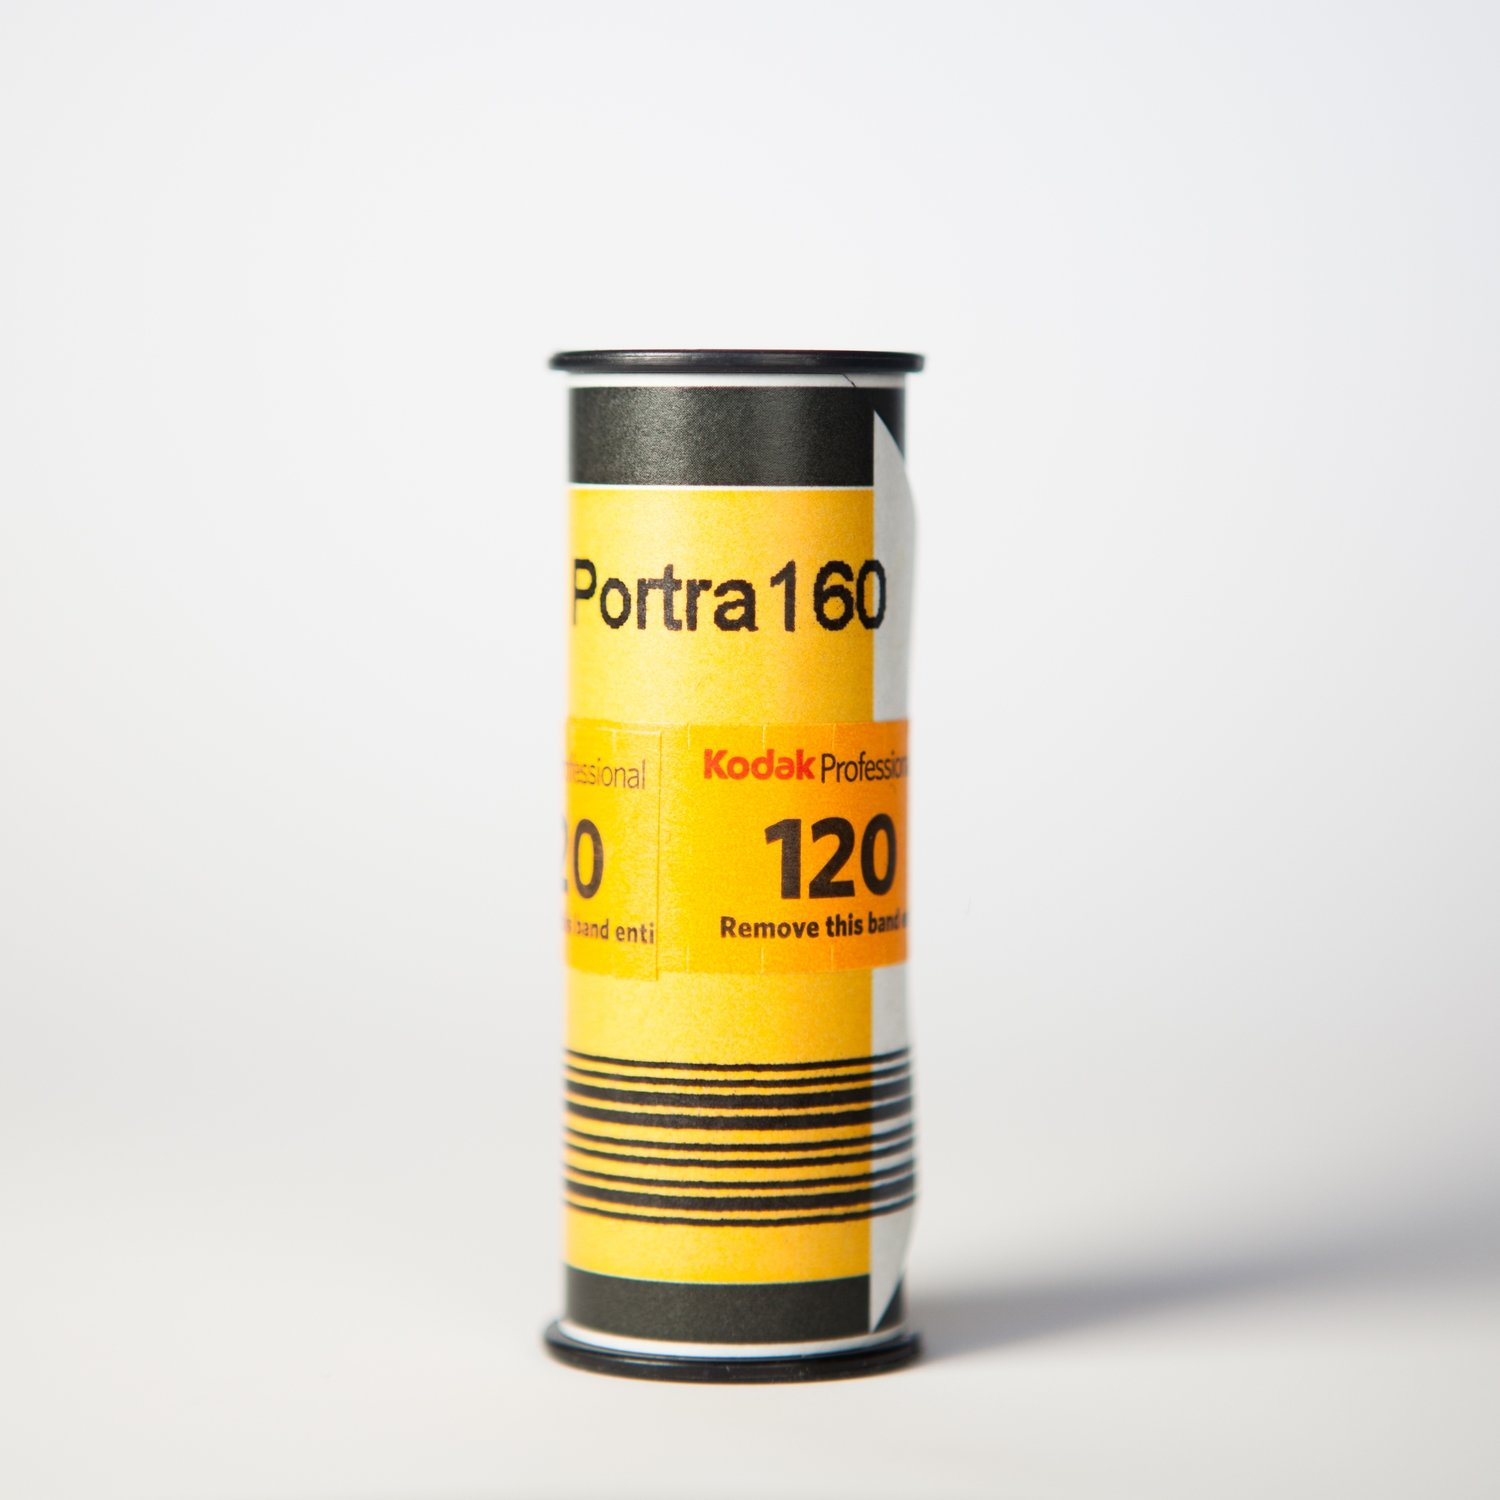 Kodak Portra 160 120 - SINGLE ROLL ($6.85/roll)